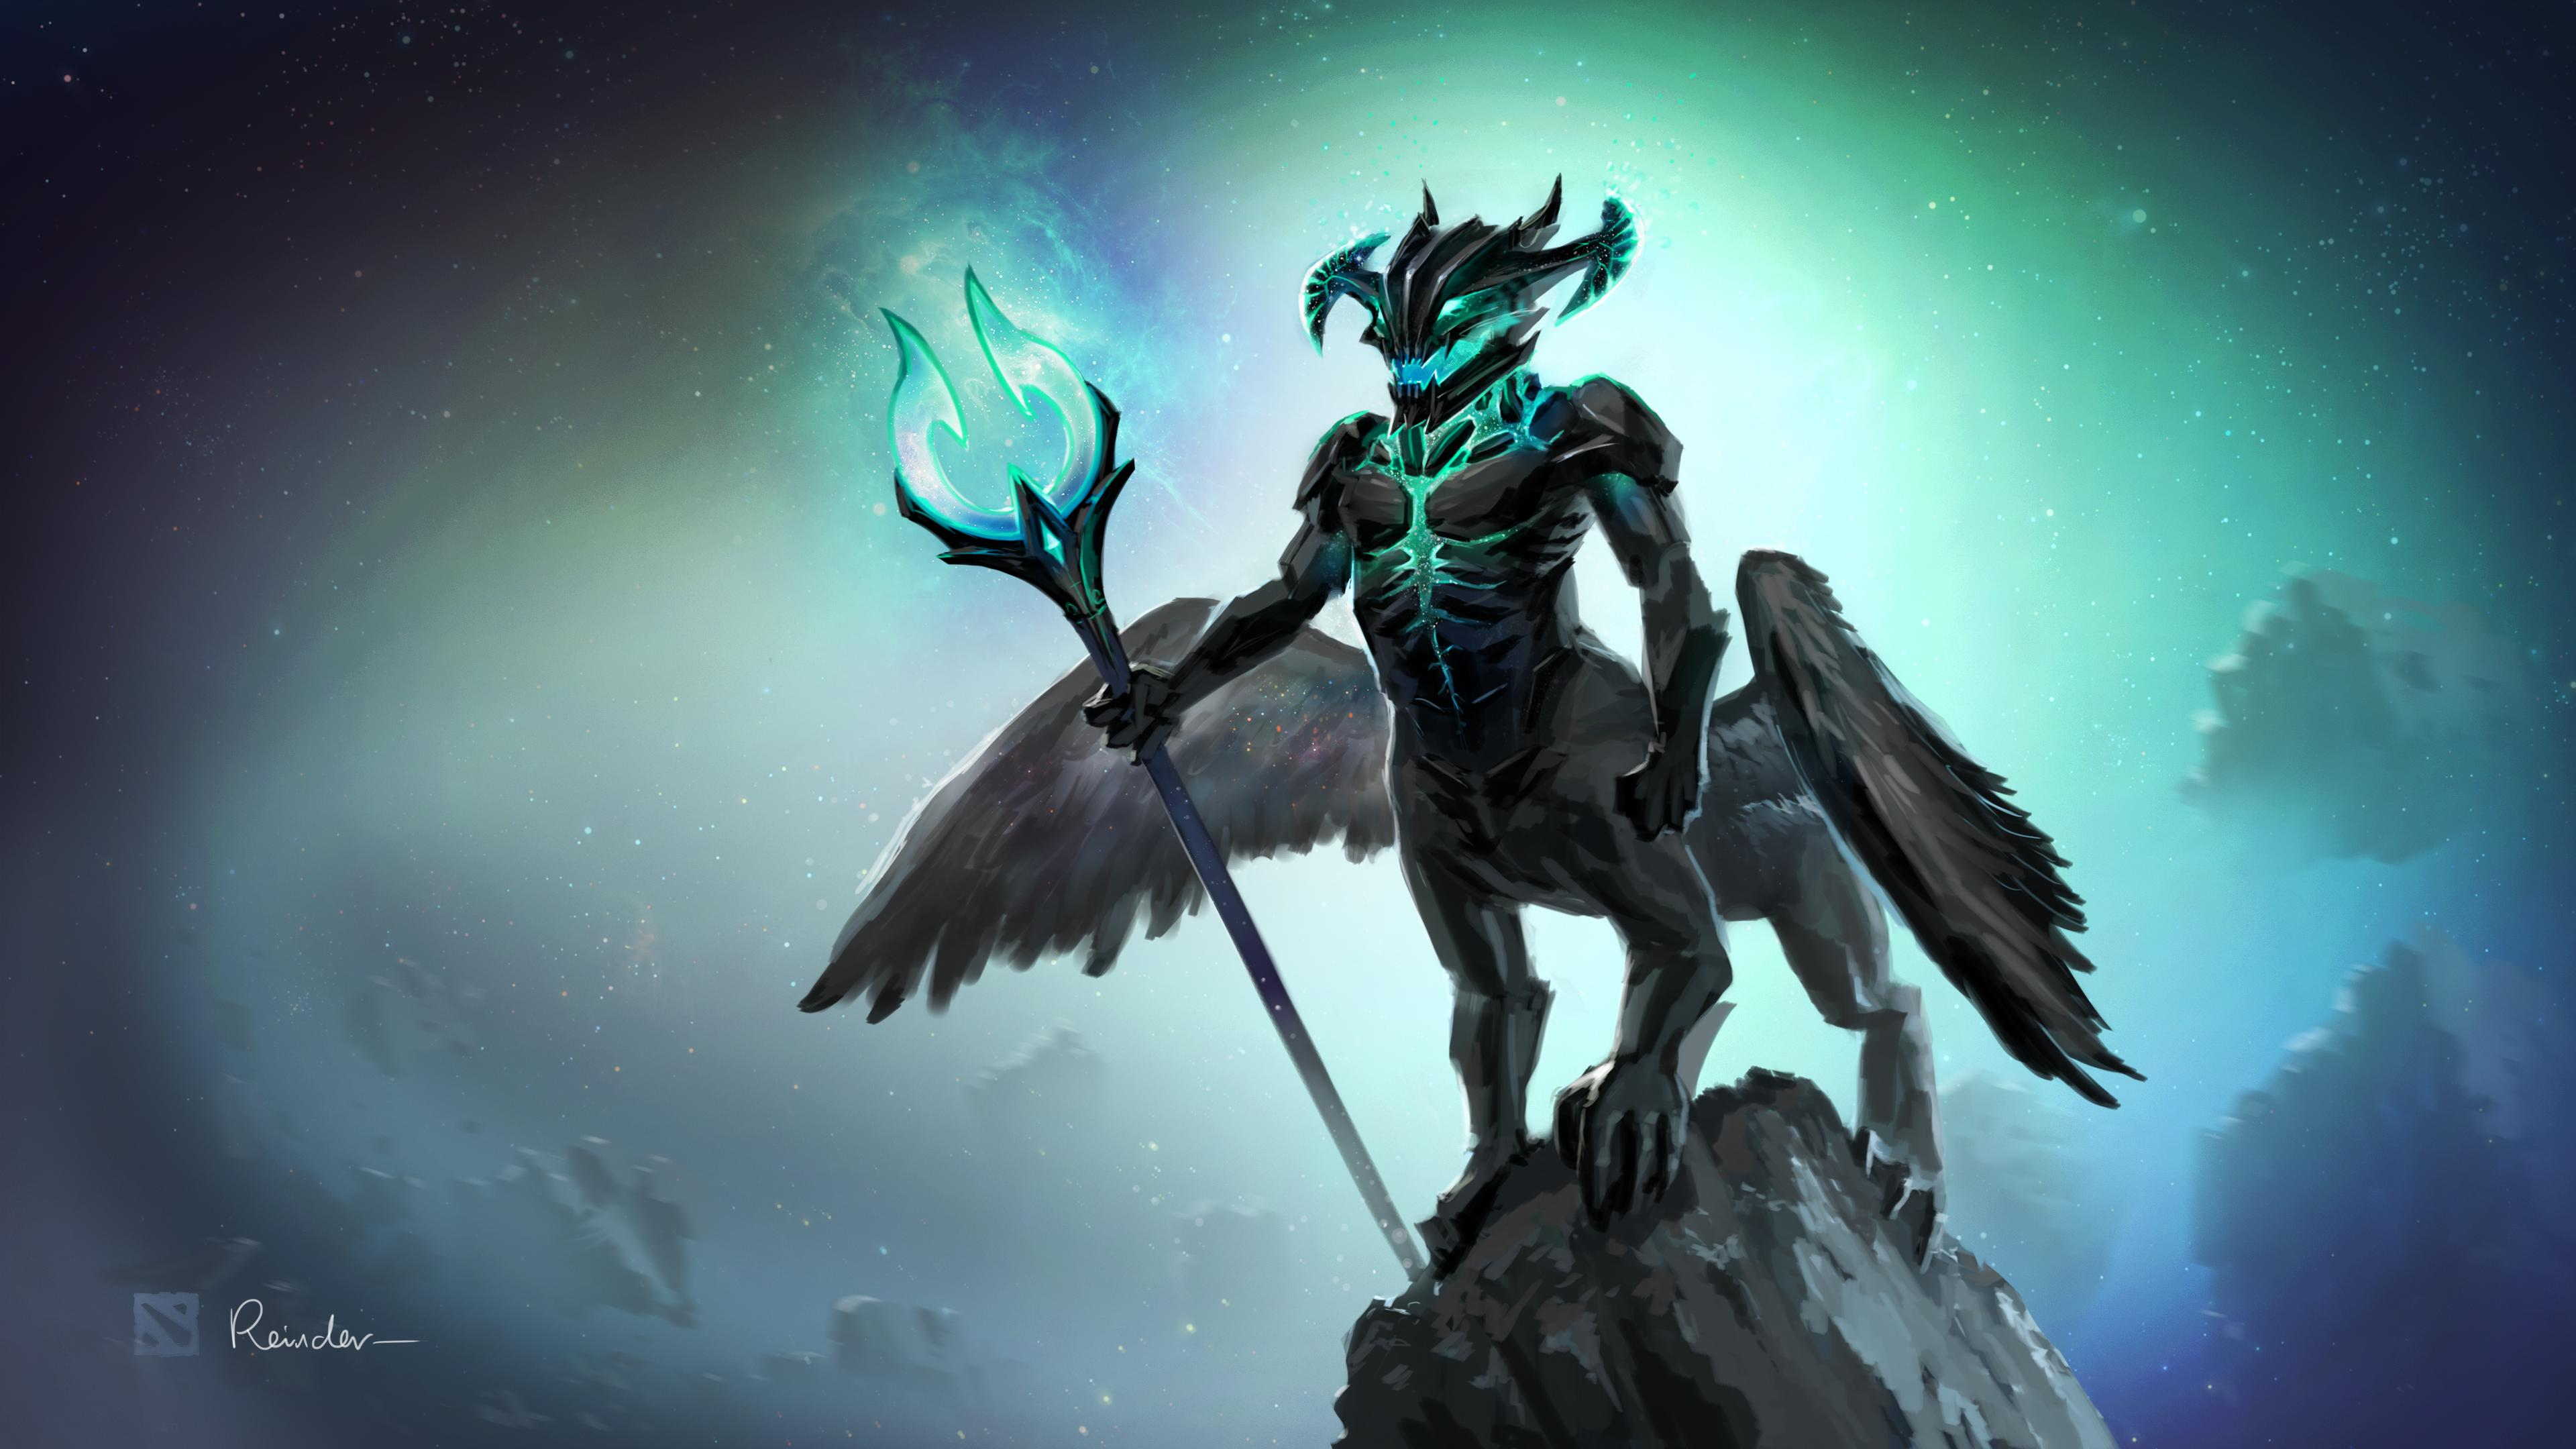 dota2 outworld devourer hd desktop wallpapers 7wallpapers net